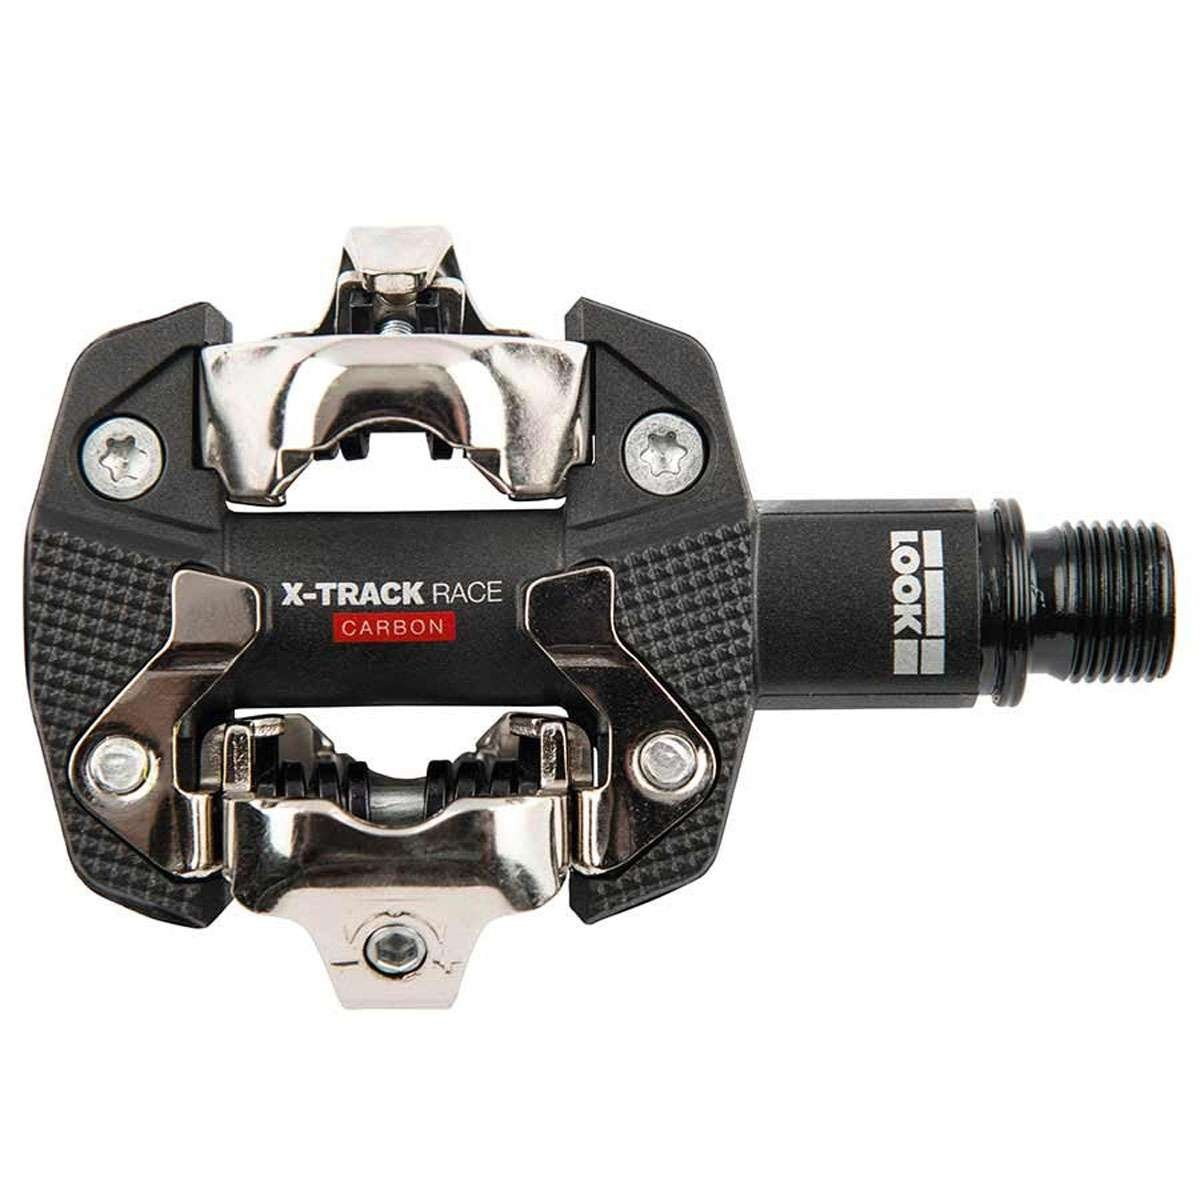 75907b4eeaa Amazon.com : Look Cycle X-Track Race Carbon Pedals Black, One Size : Sports  & Outdoors